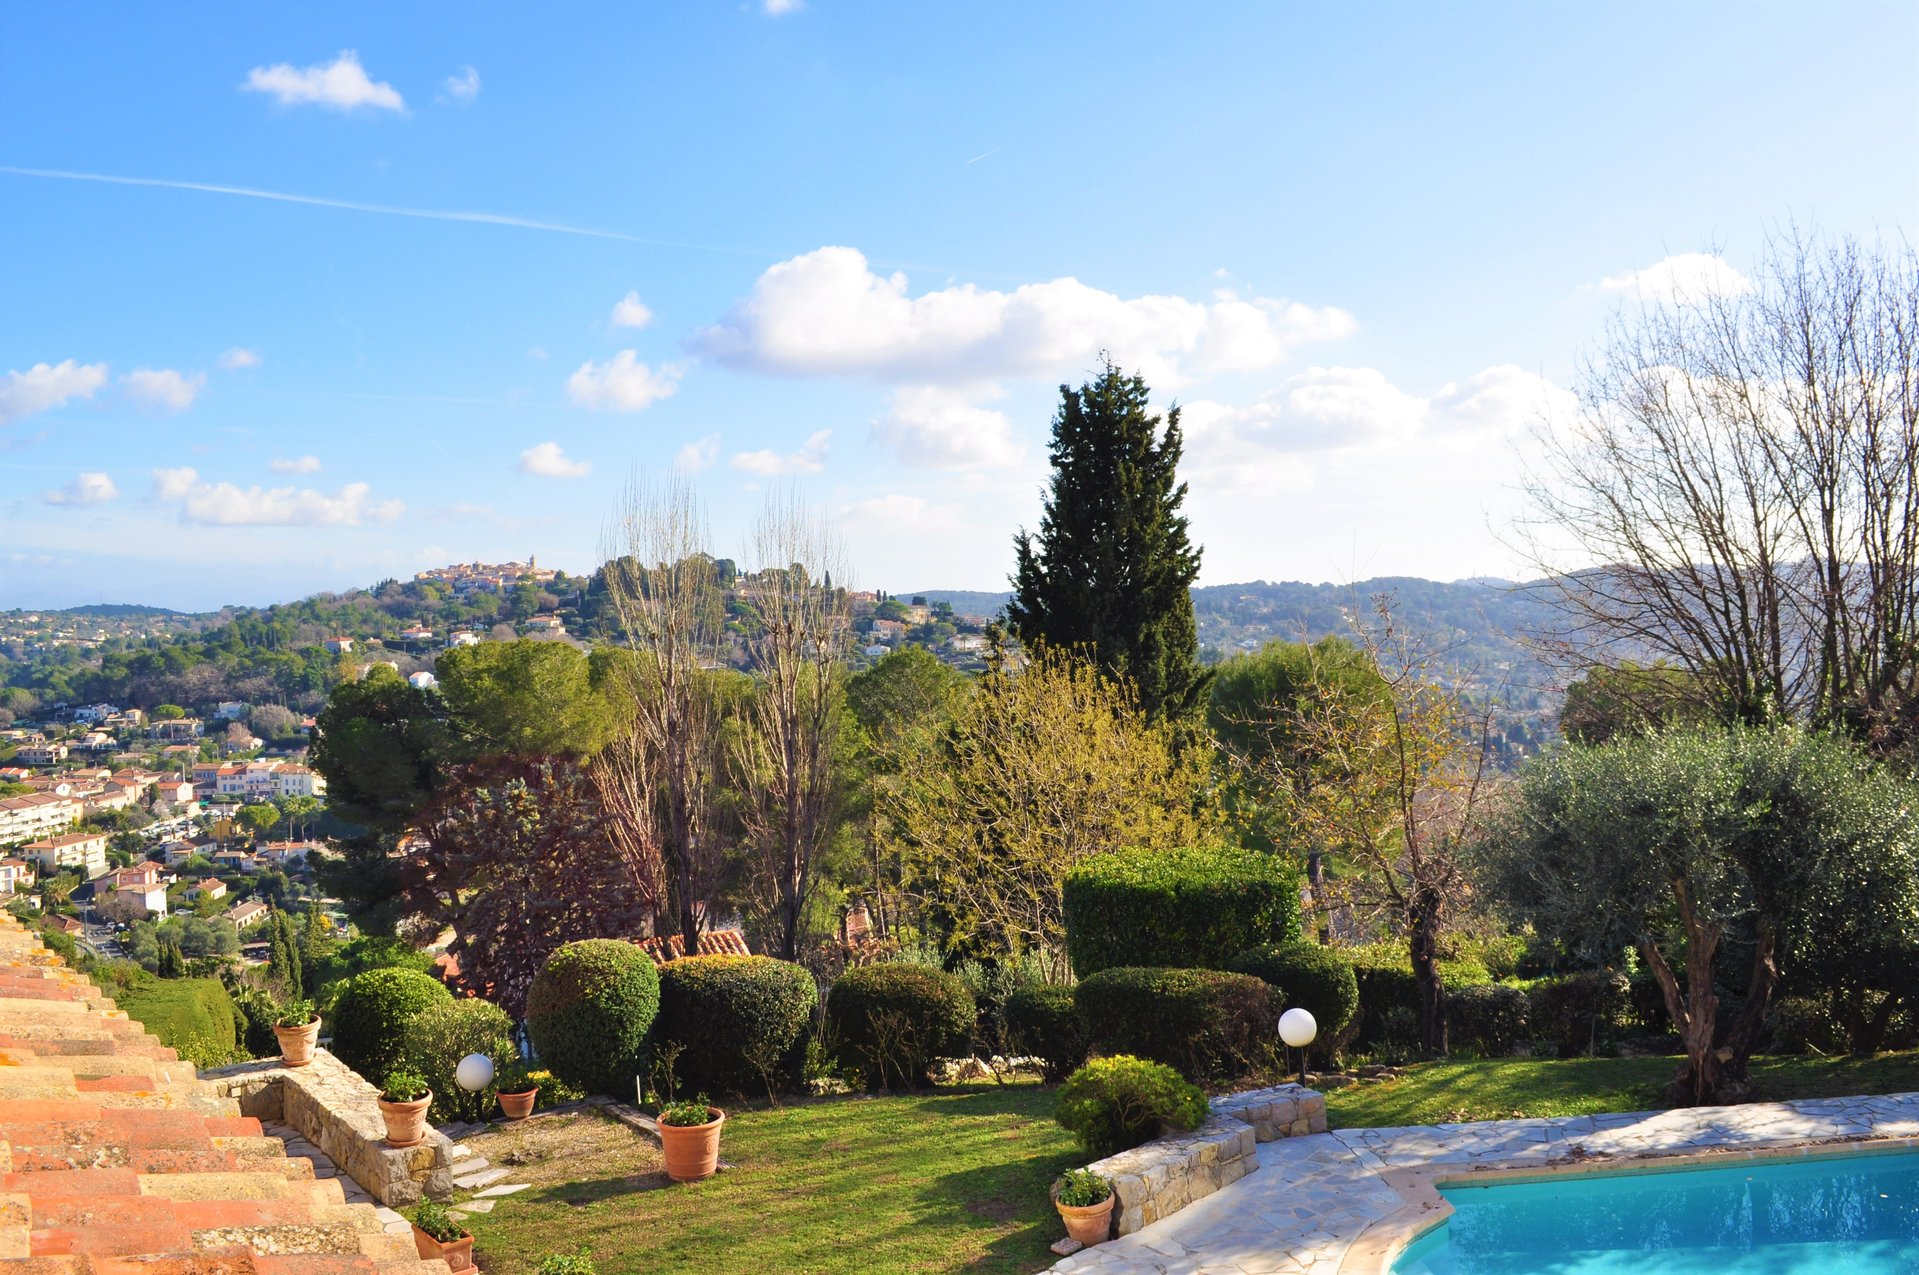 MOUGINS – STUNNING VIEW OVER THE VILLAGE AND MOUNTAINS